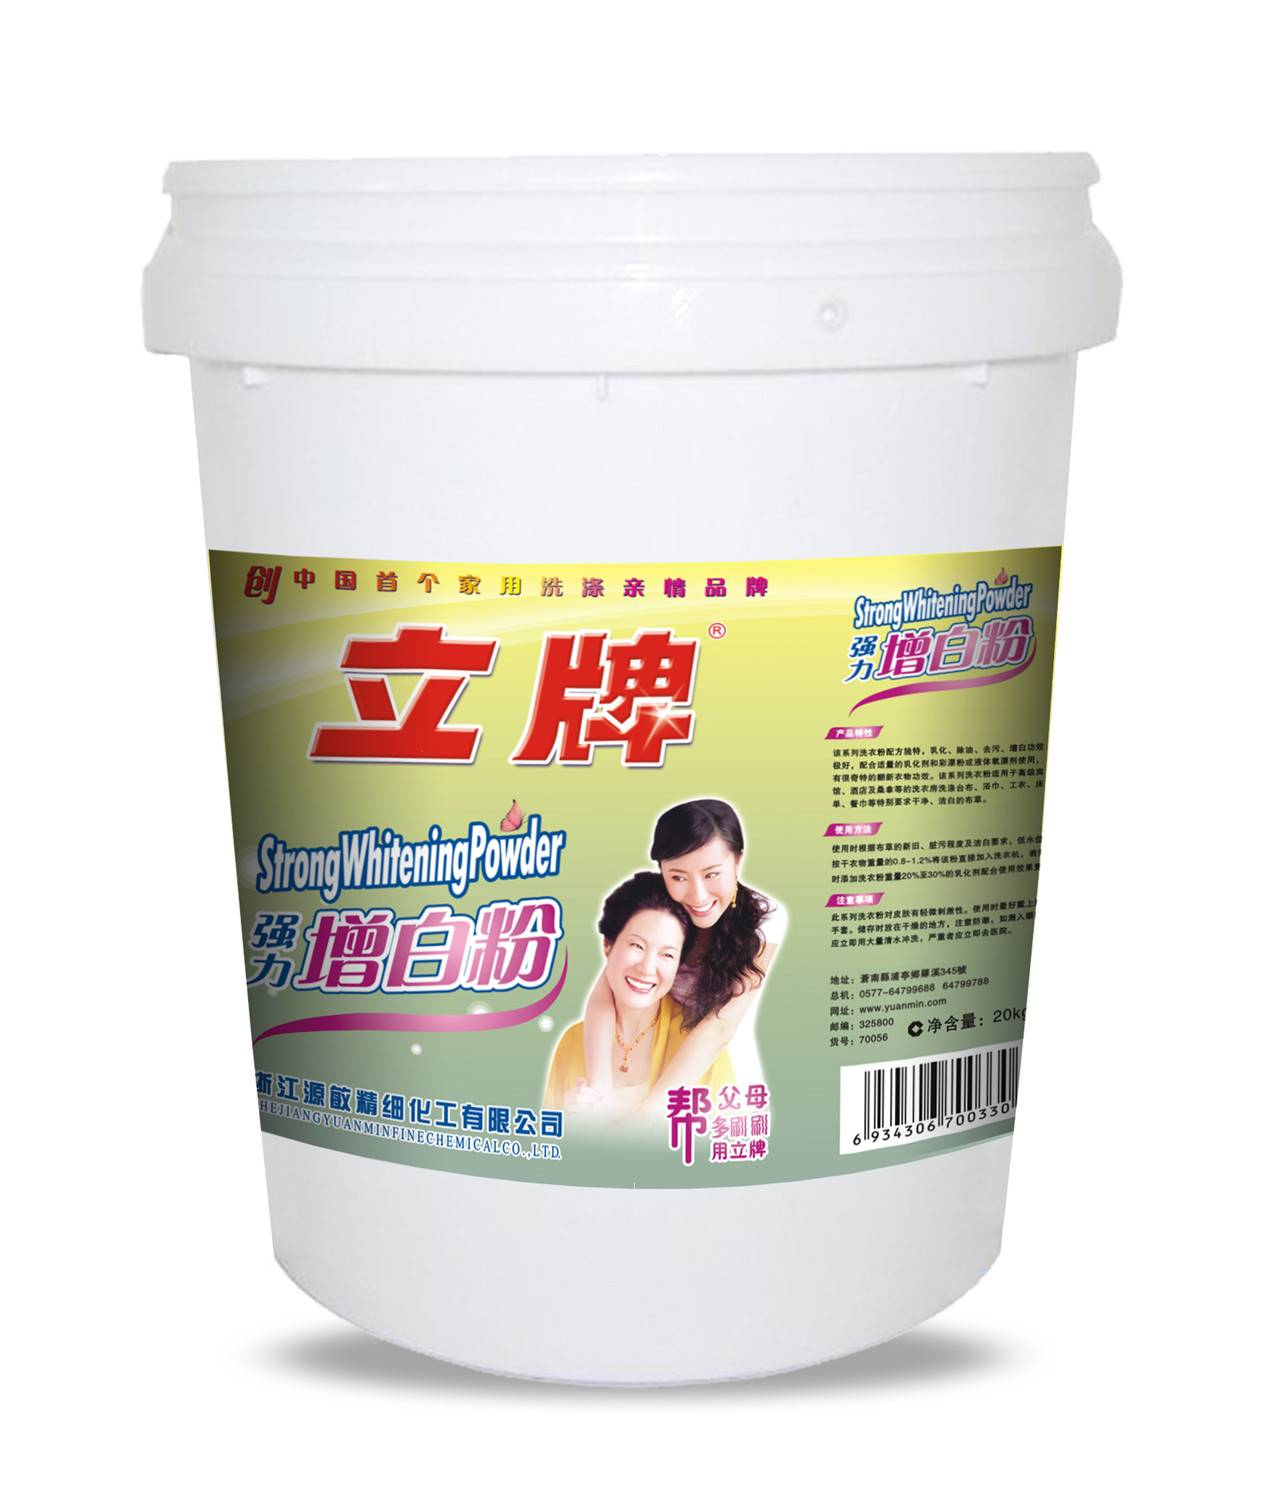 Strong Whitening Powder, 20kg, Nice Emulsifying, Daily chemicals, OEM, The laundry and hotel use.